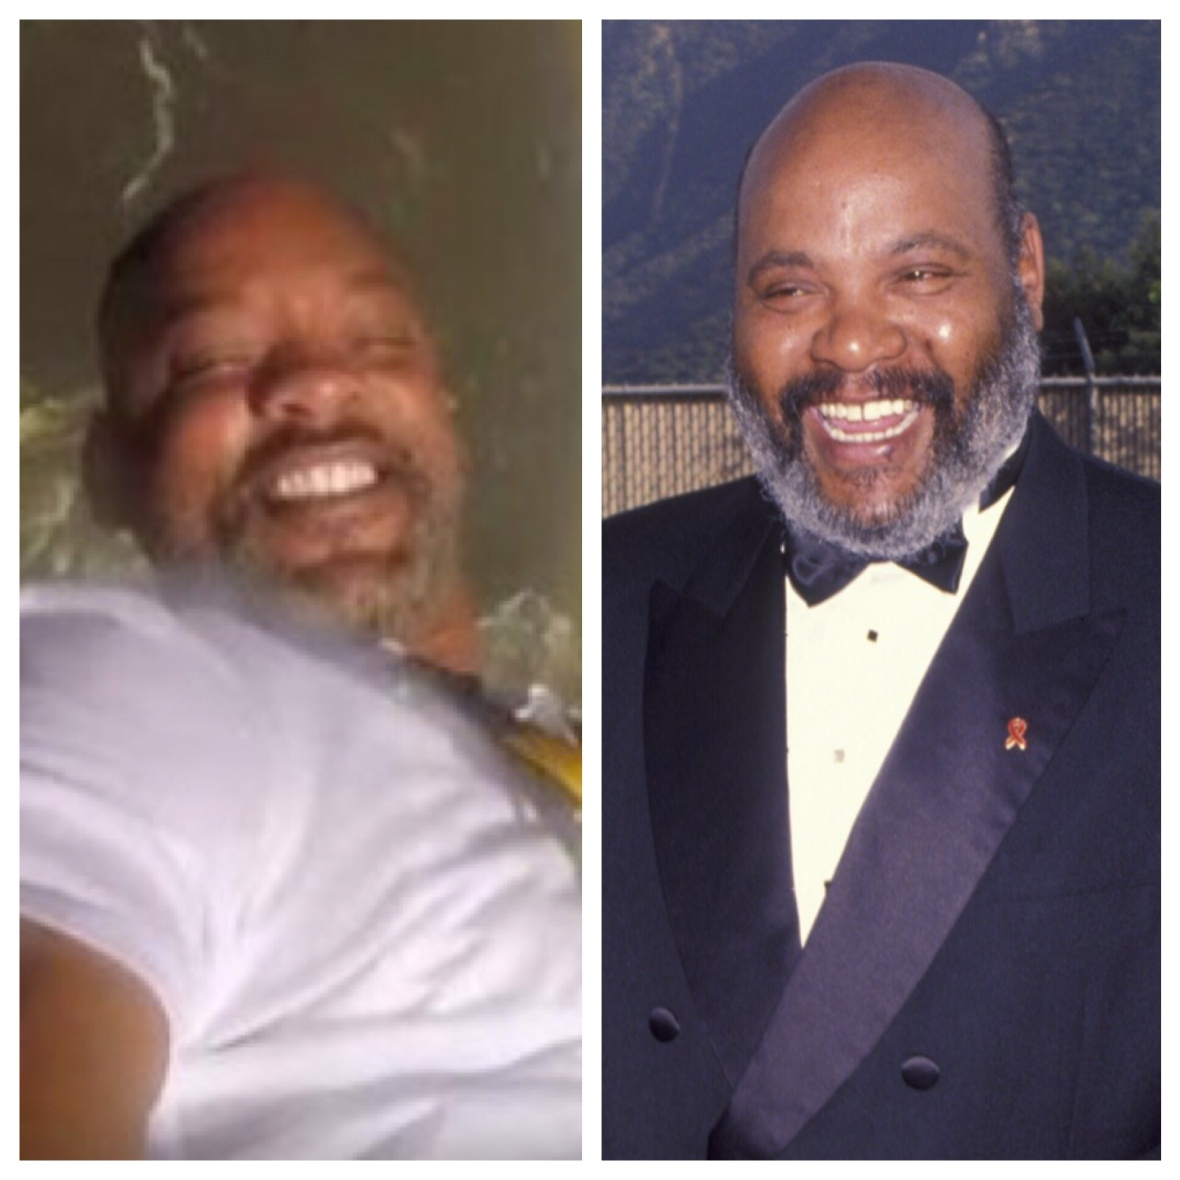 will smith uncle phil youtube (tony barnett), getty images